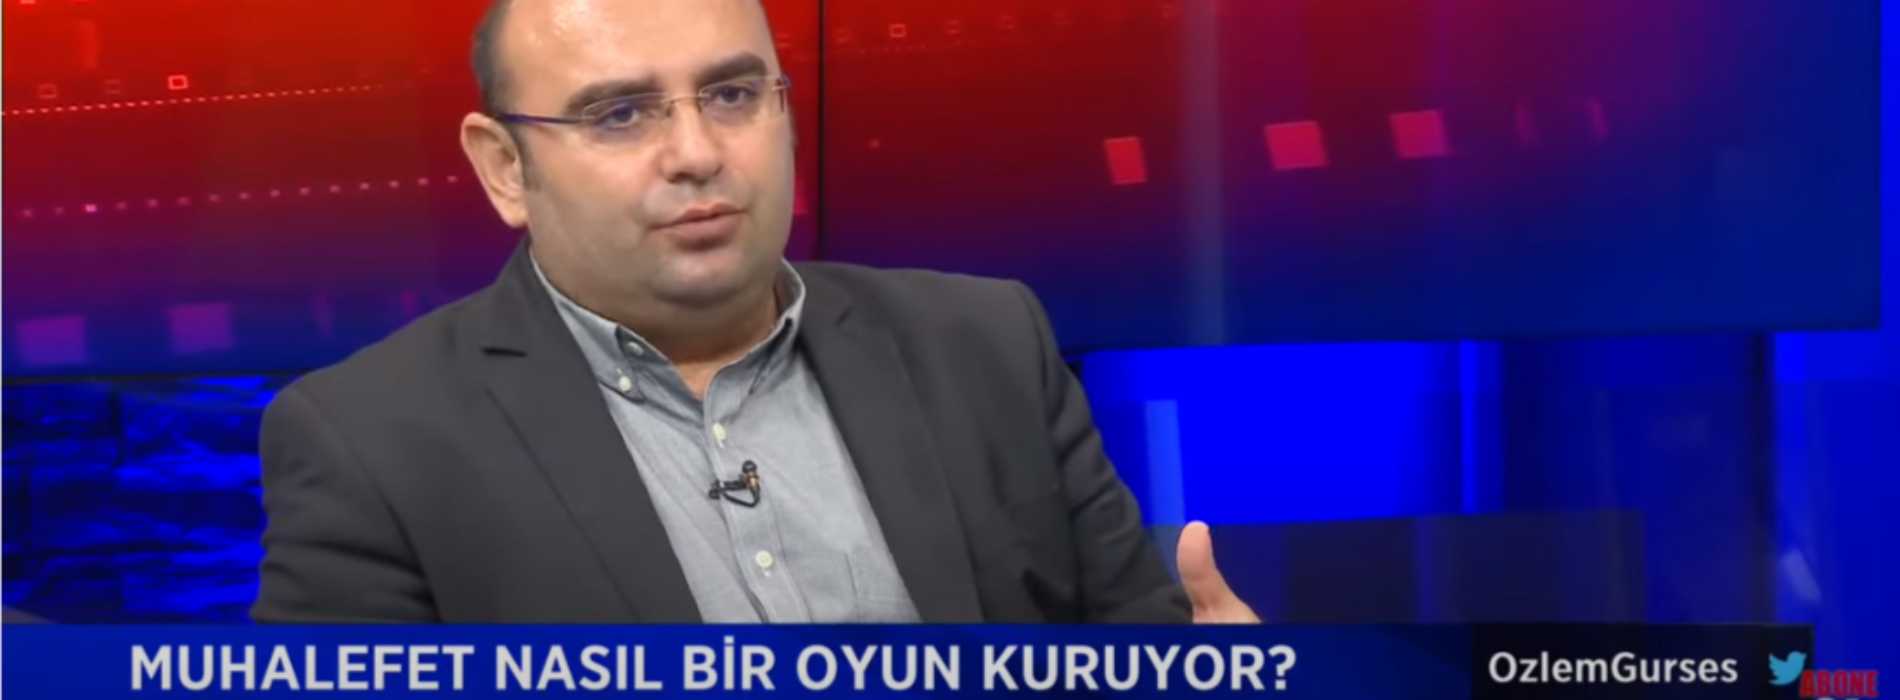 Aksoy Research Founder Ertan Aksoy is the Guest of Halk TV